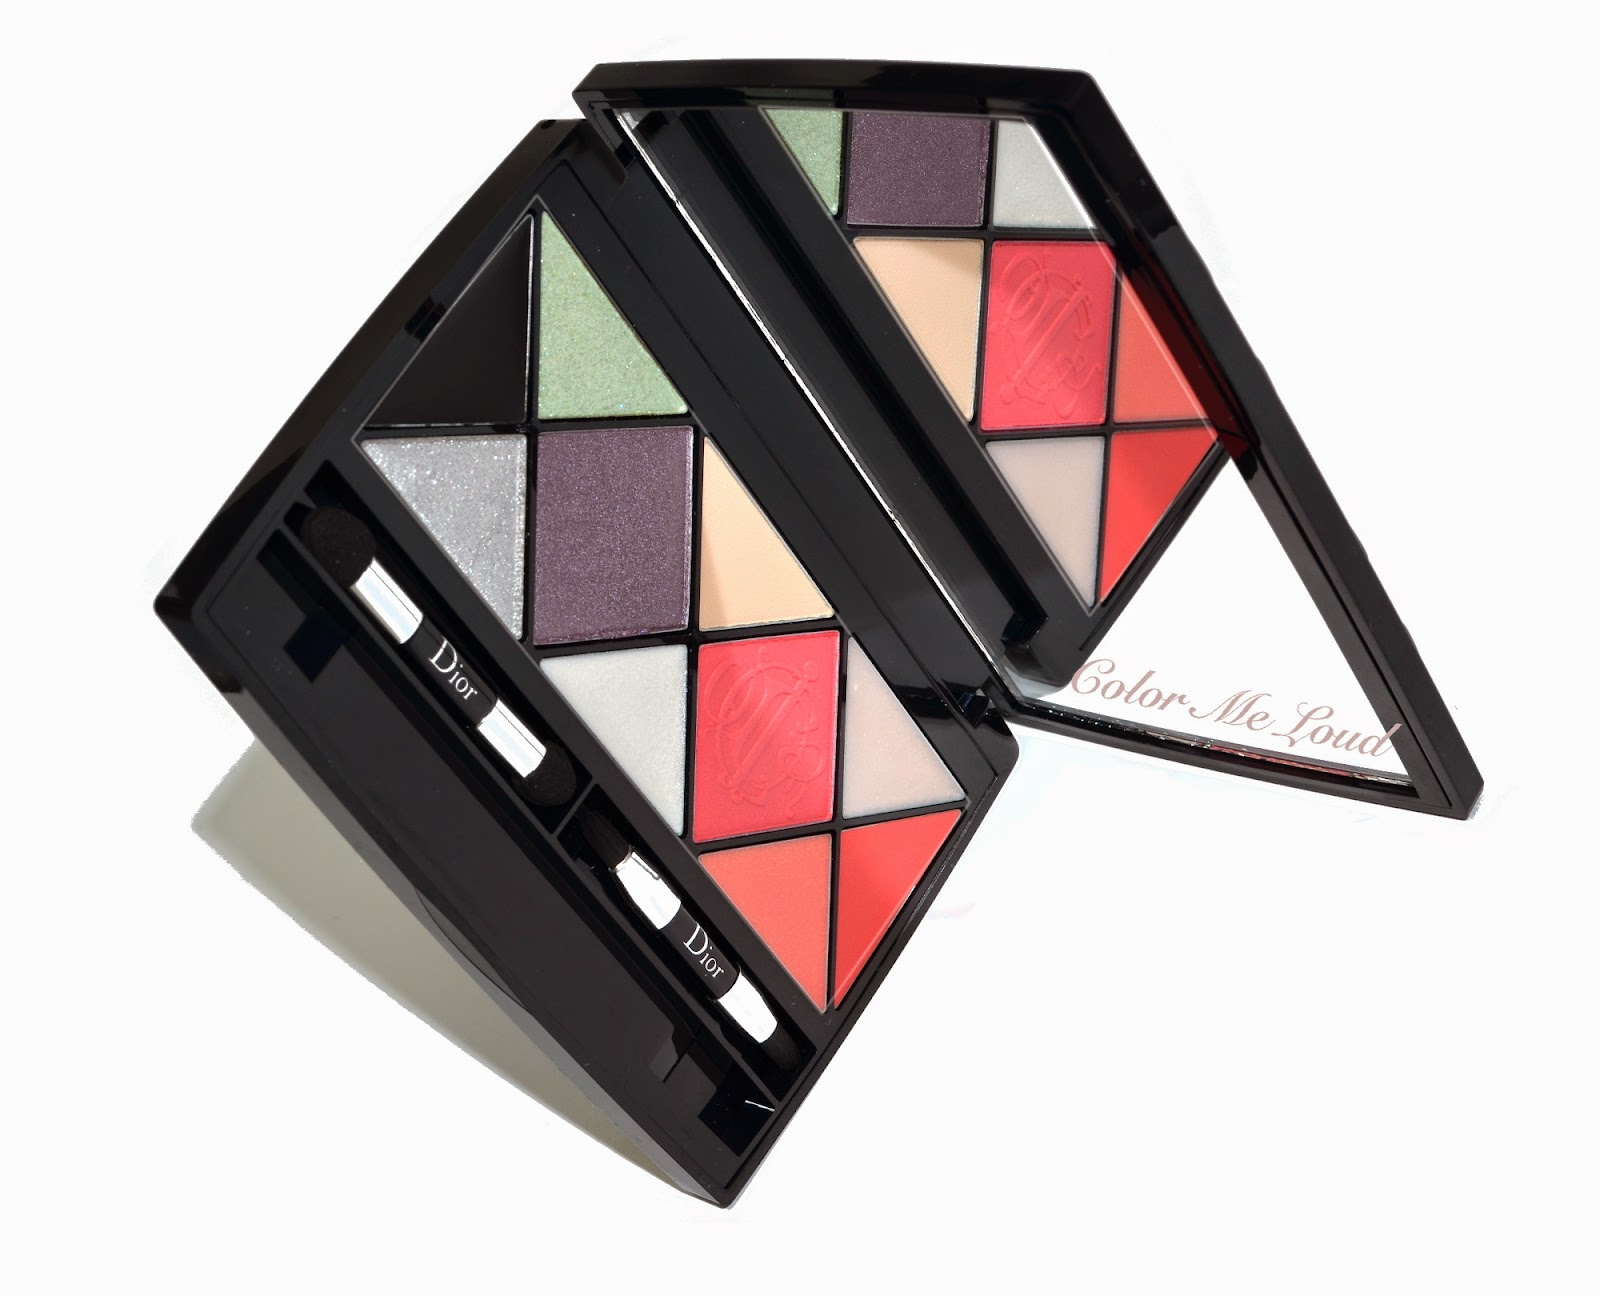 Dior Kingdom of Colors Palette for Face, Eyes and Lips